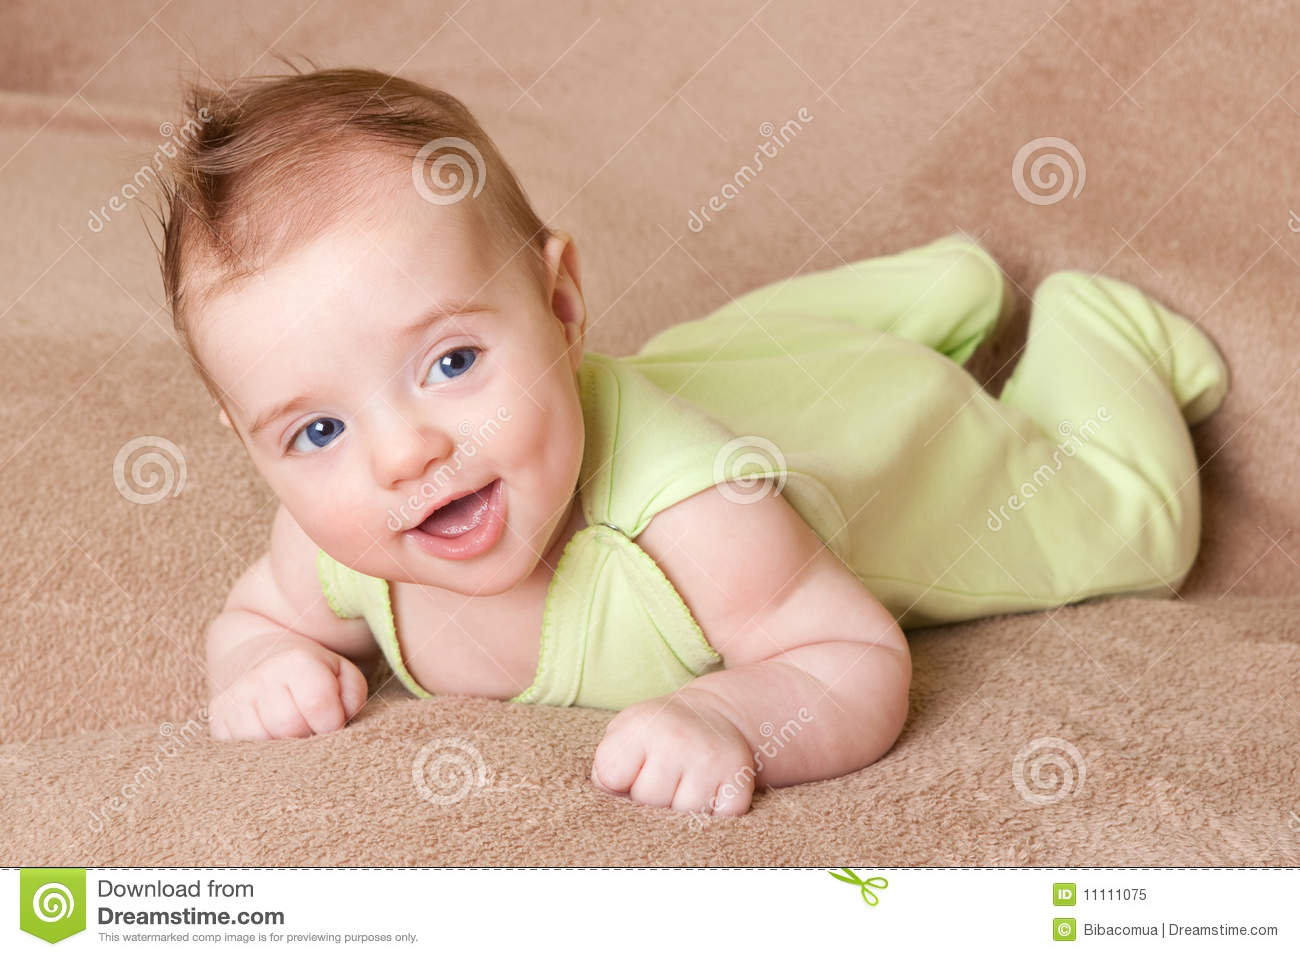 baby laugh royalty free stock photo - image: 11111075